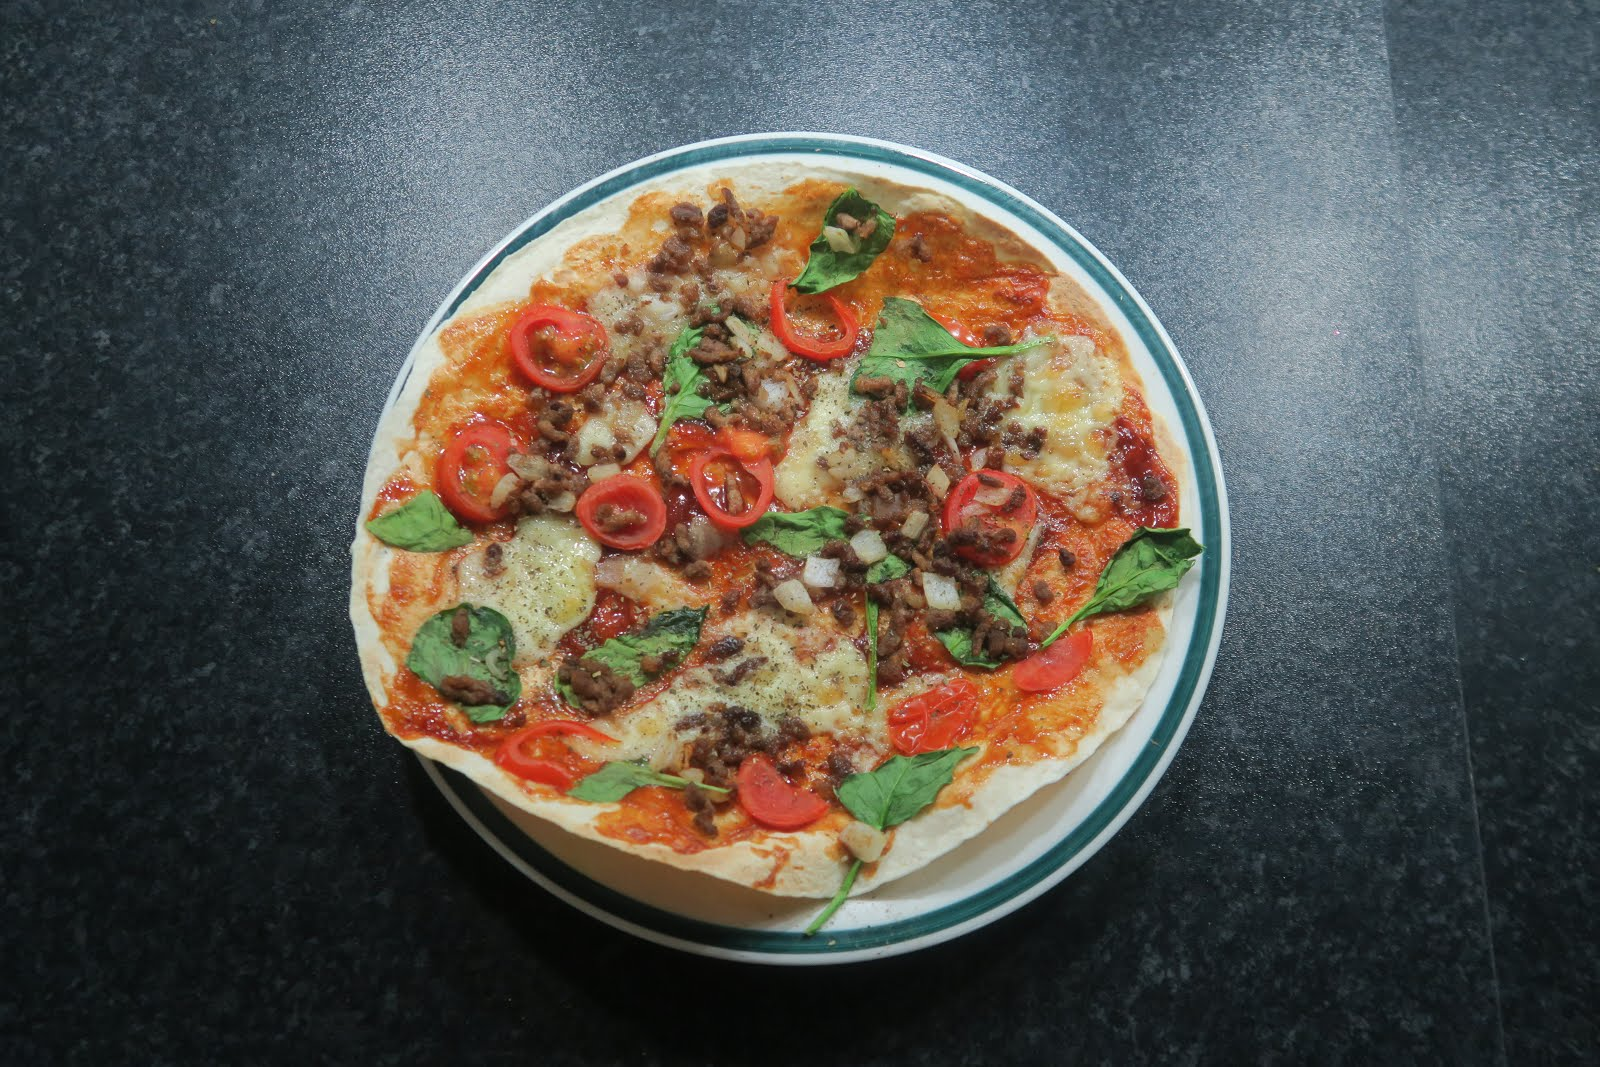 joe wicks, get lean in 15 minutes, tortilla pizza, how to, best tortilla pizza recipes, healthy dinner options, healthy pizza, losing weight, diet menu, spinach, tomatoes, how to lose weight, fionabrianne